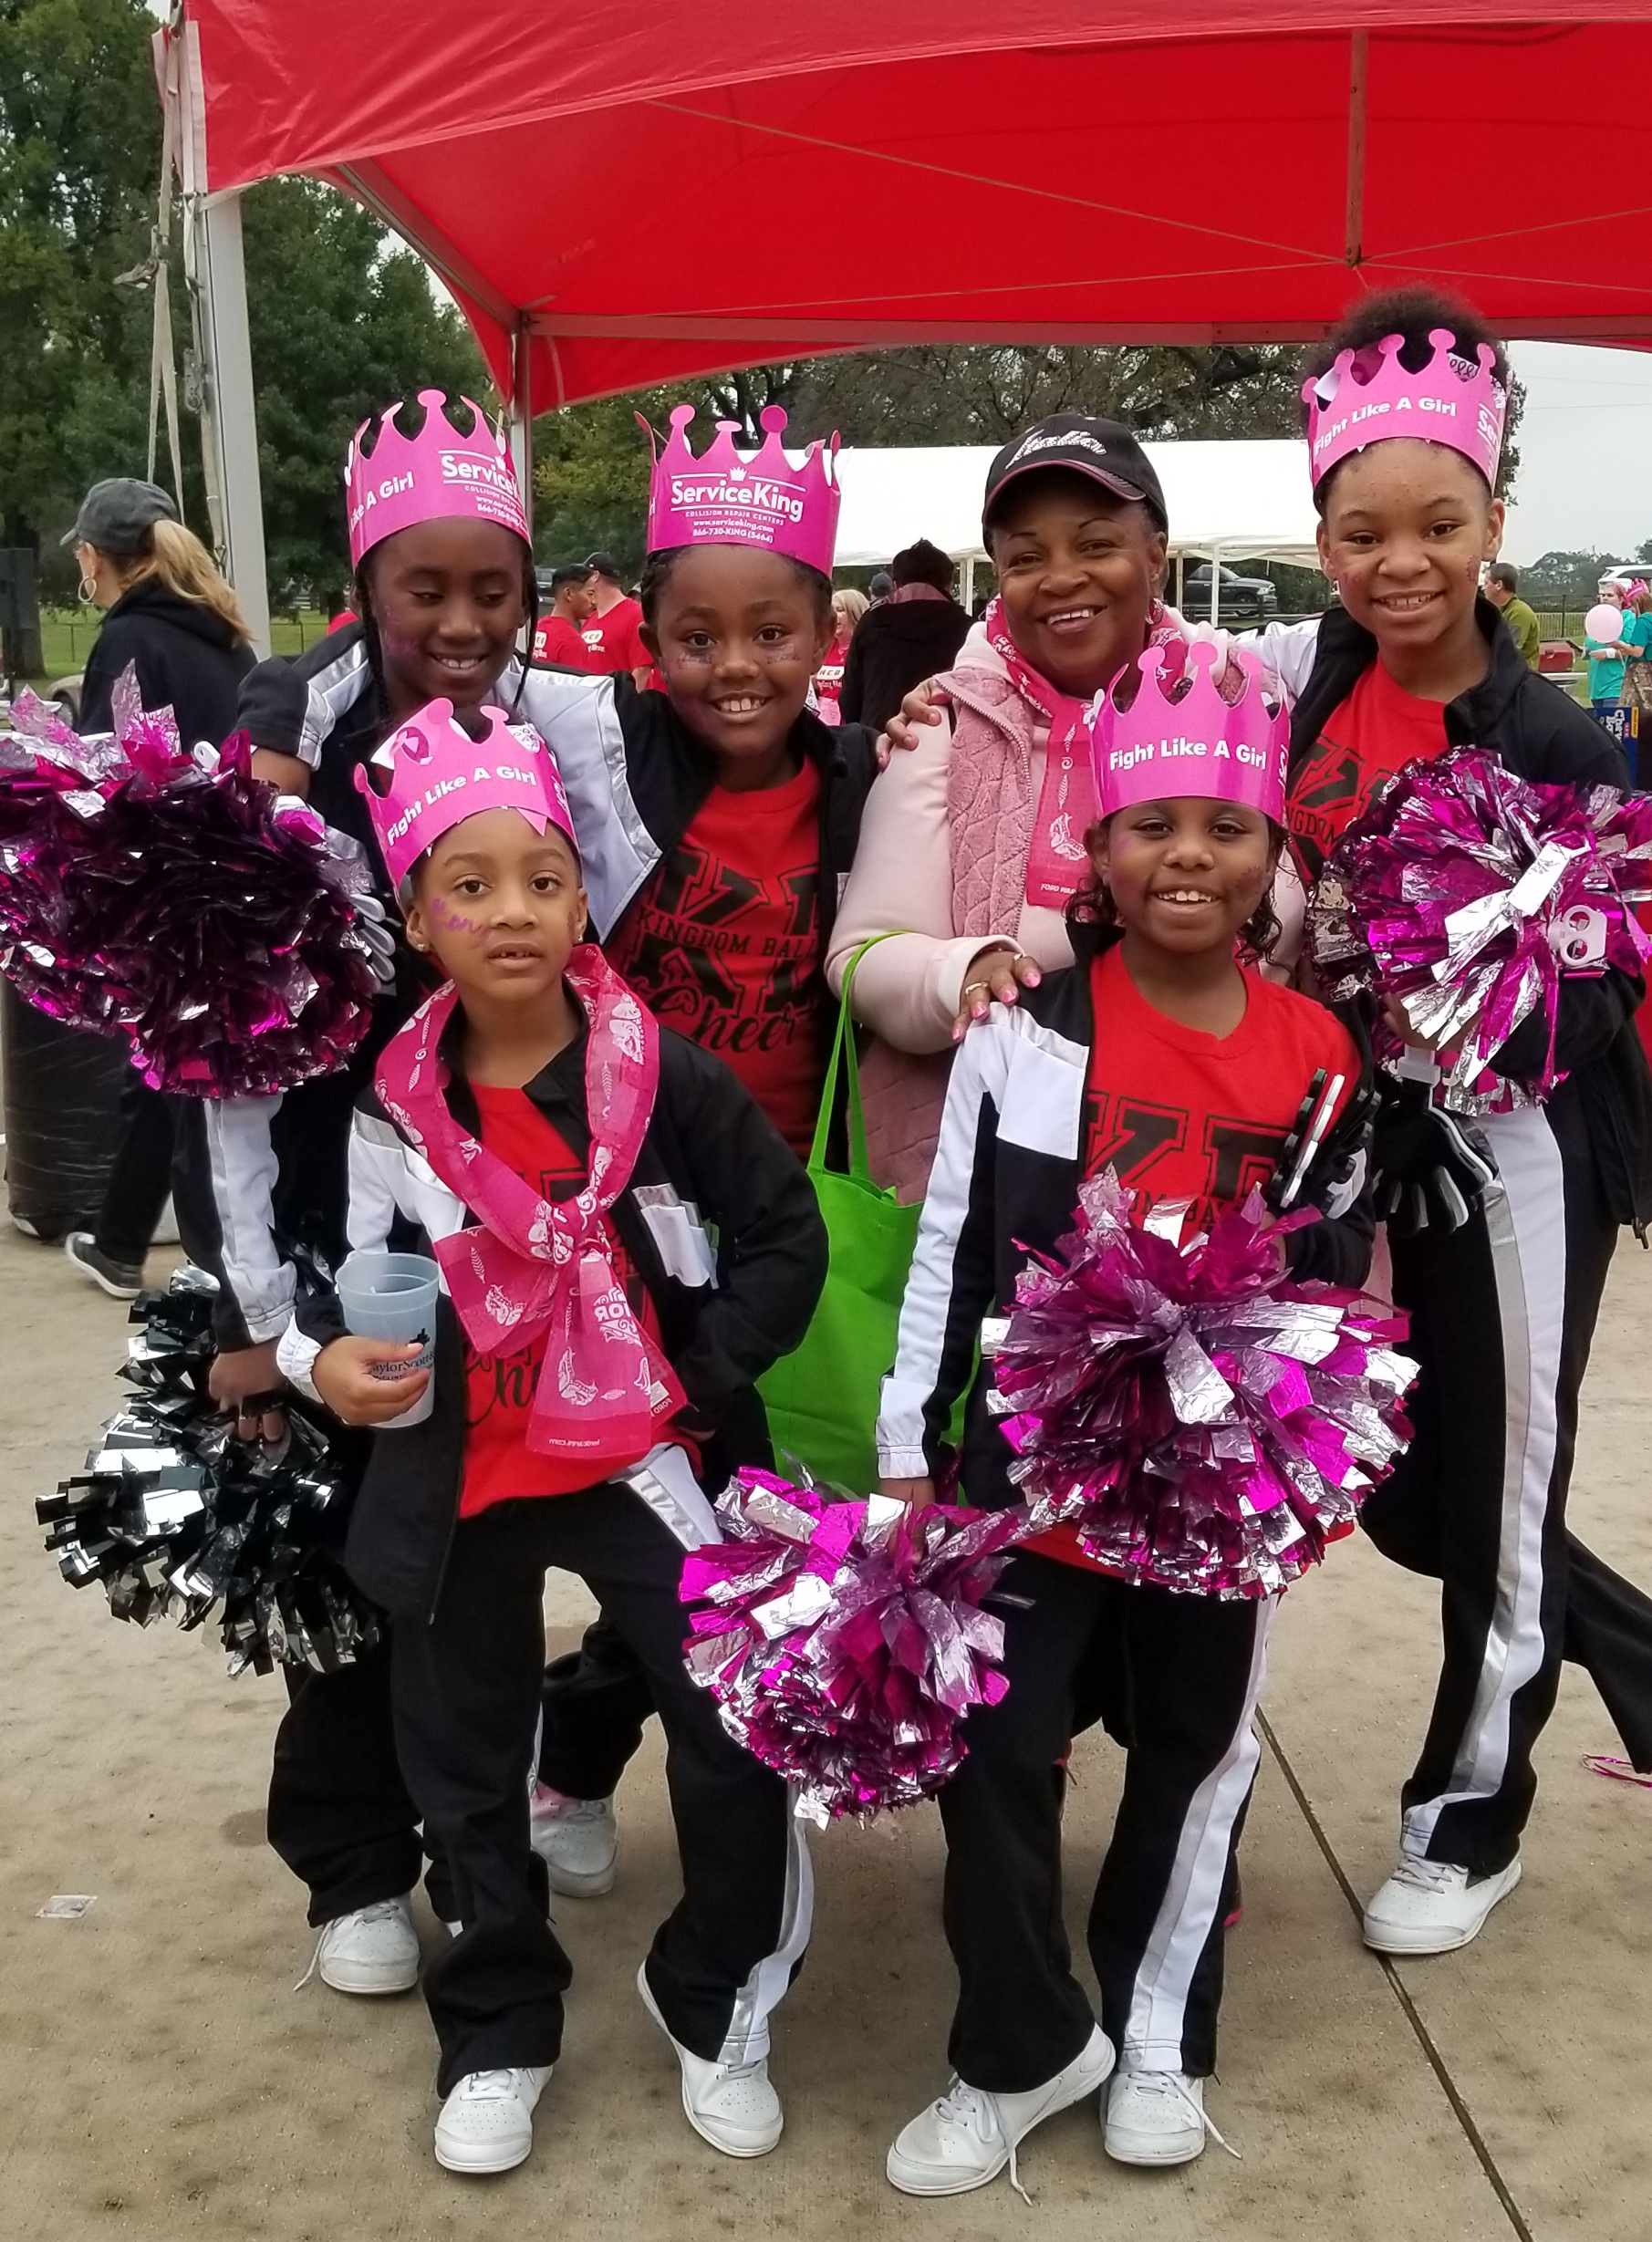 Sandra Henry with girls from Footprintz Dance at the 2018 Komen Race for the Cure in Waco